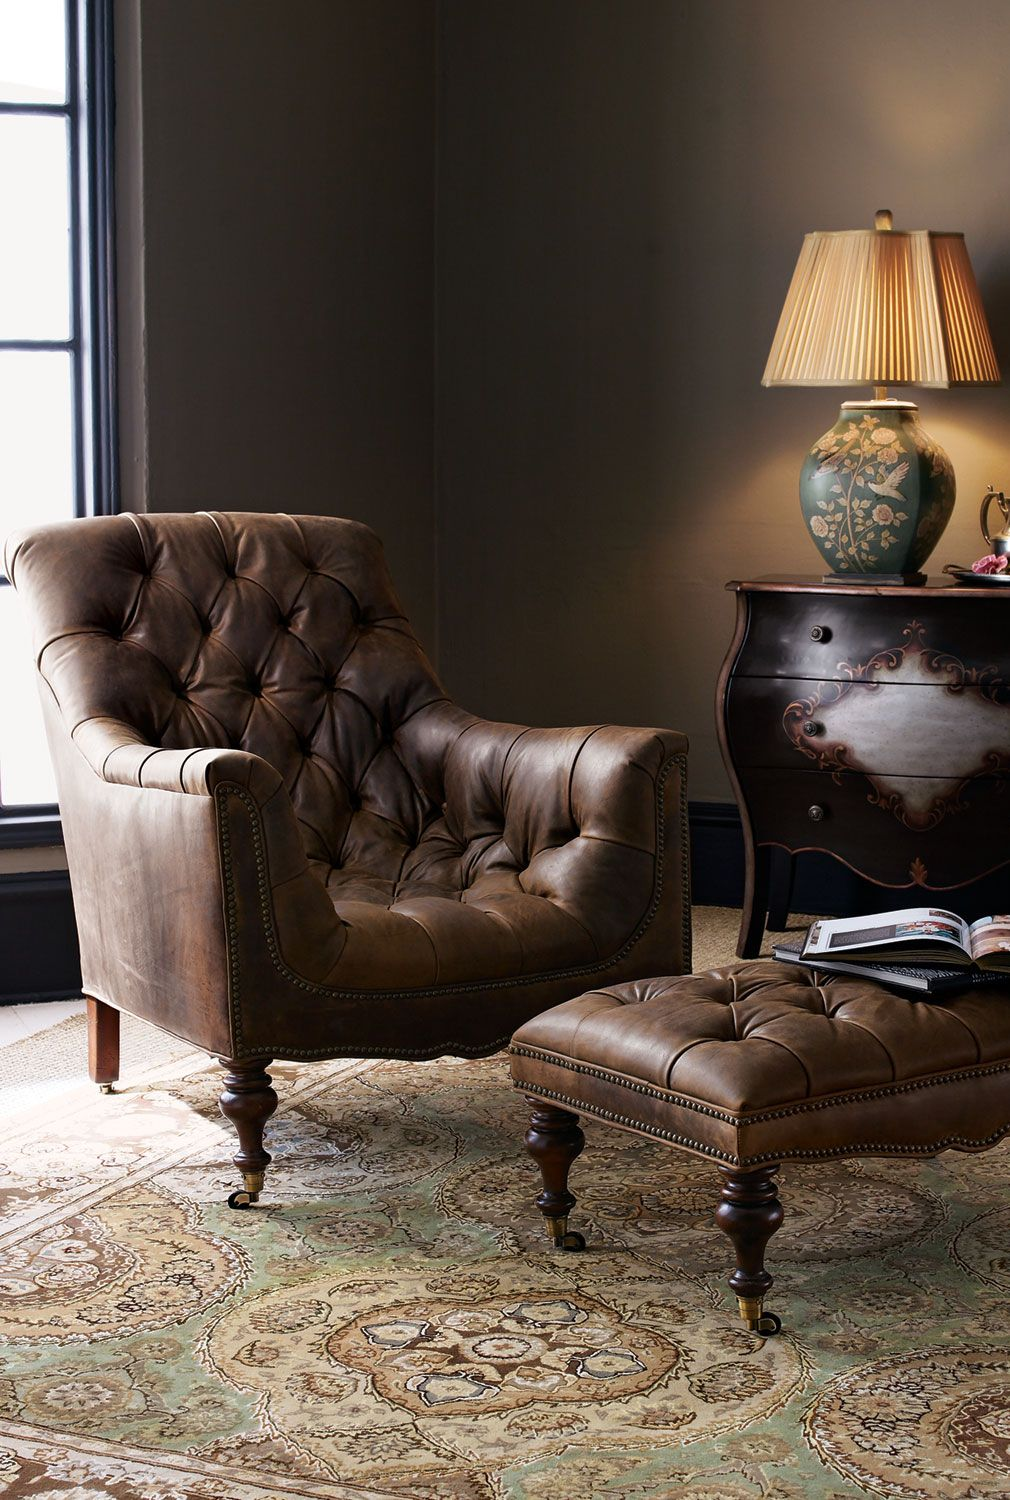 oxblood red chesterfield sofa direct buy sofas old hickory tannery tufted leather chair & ottoman | home ...